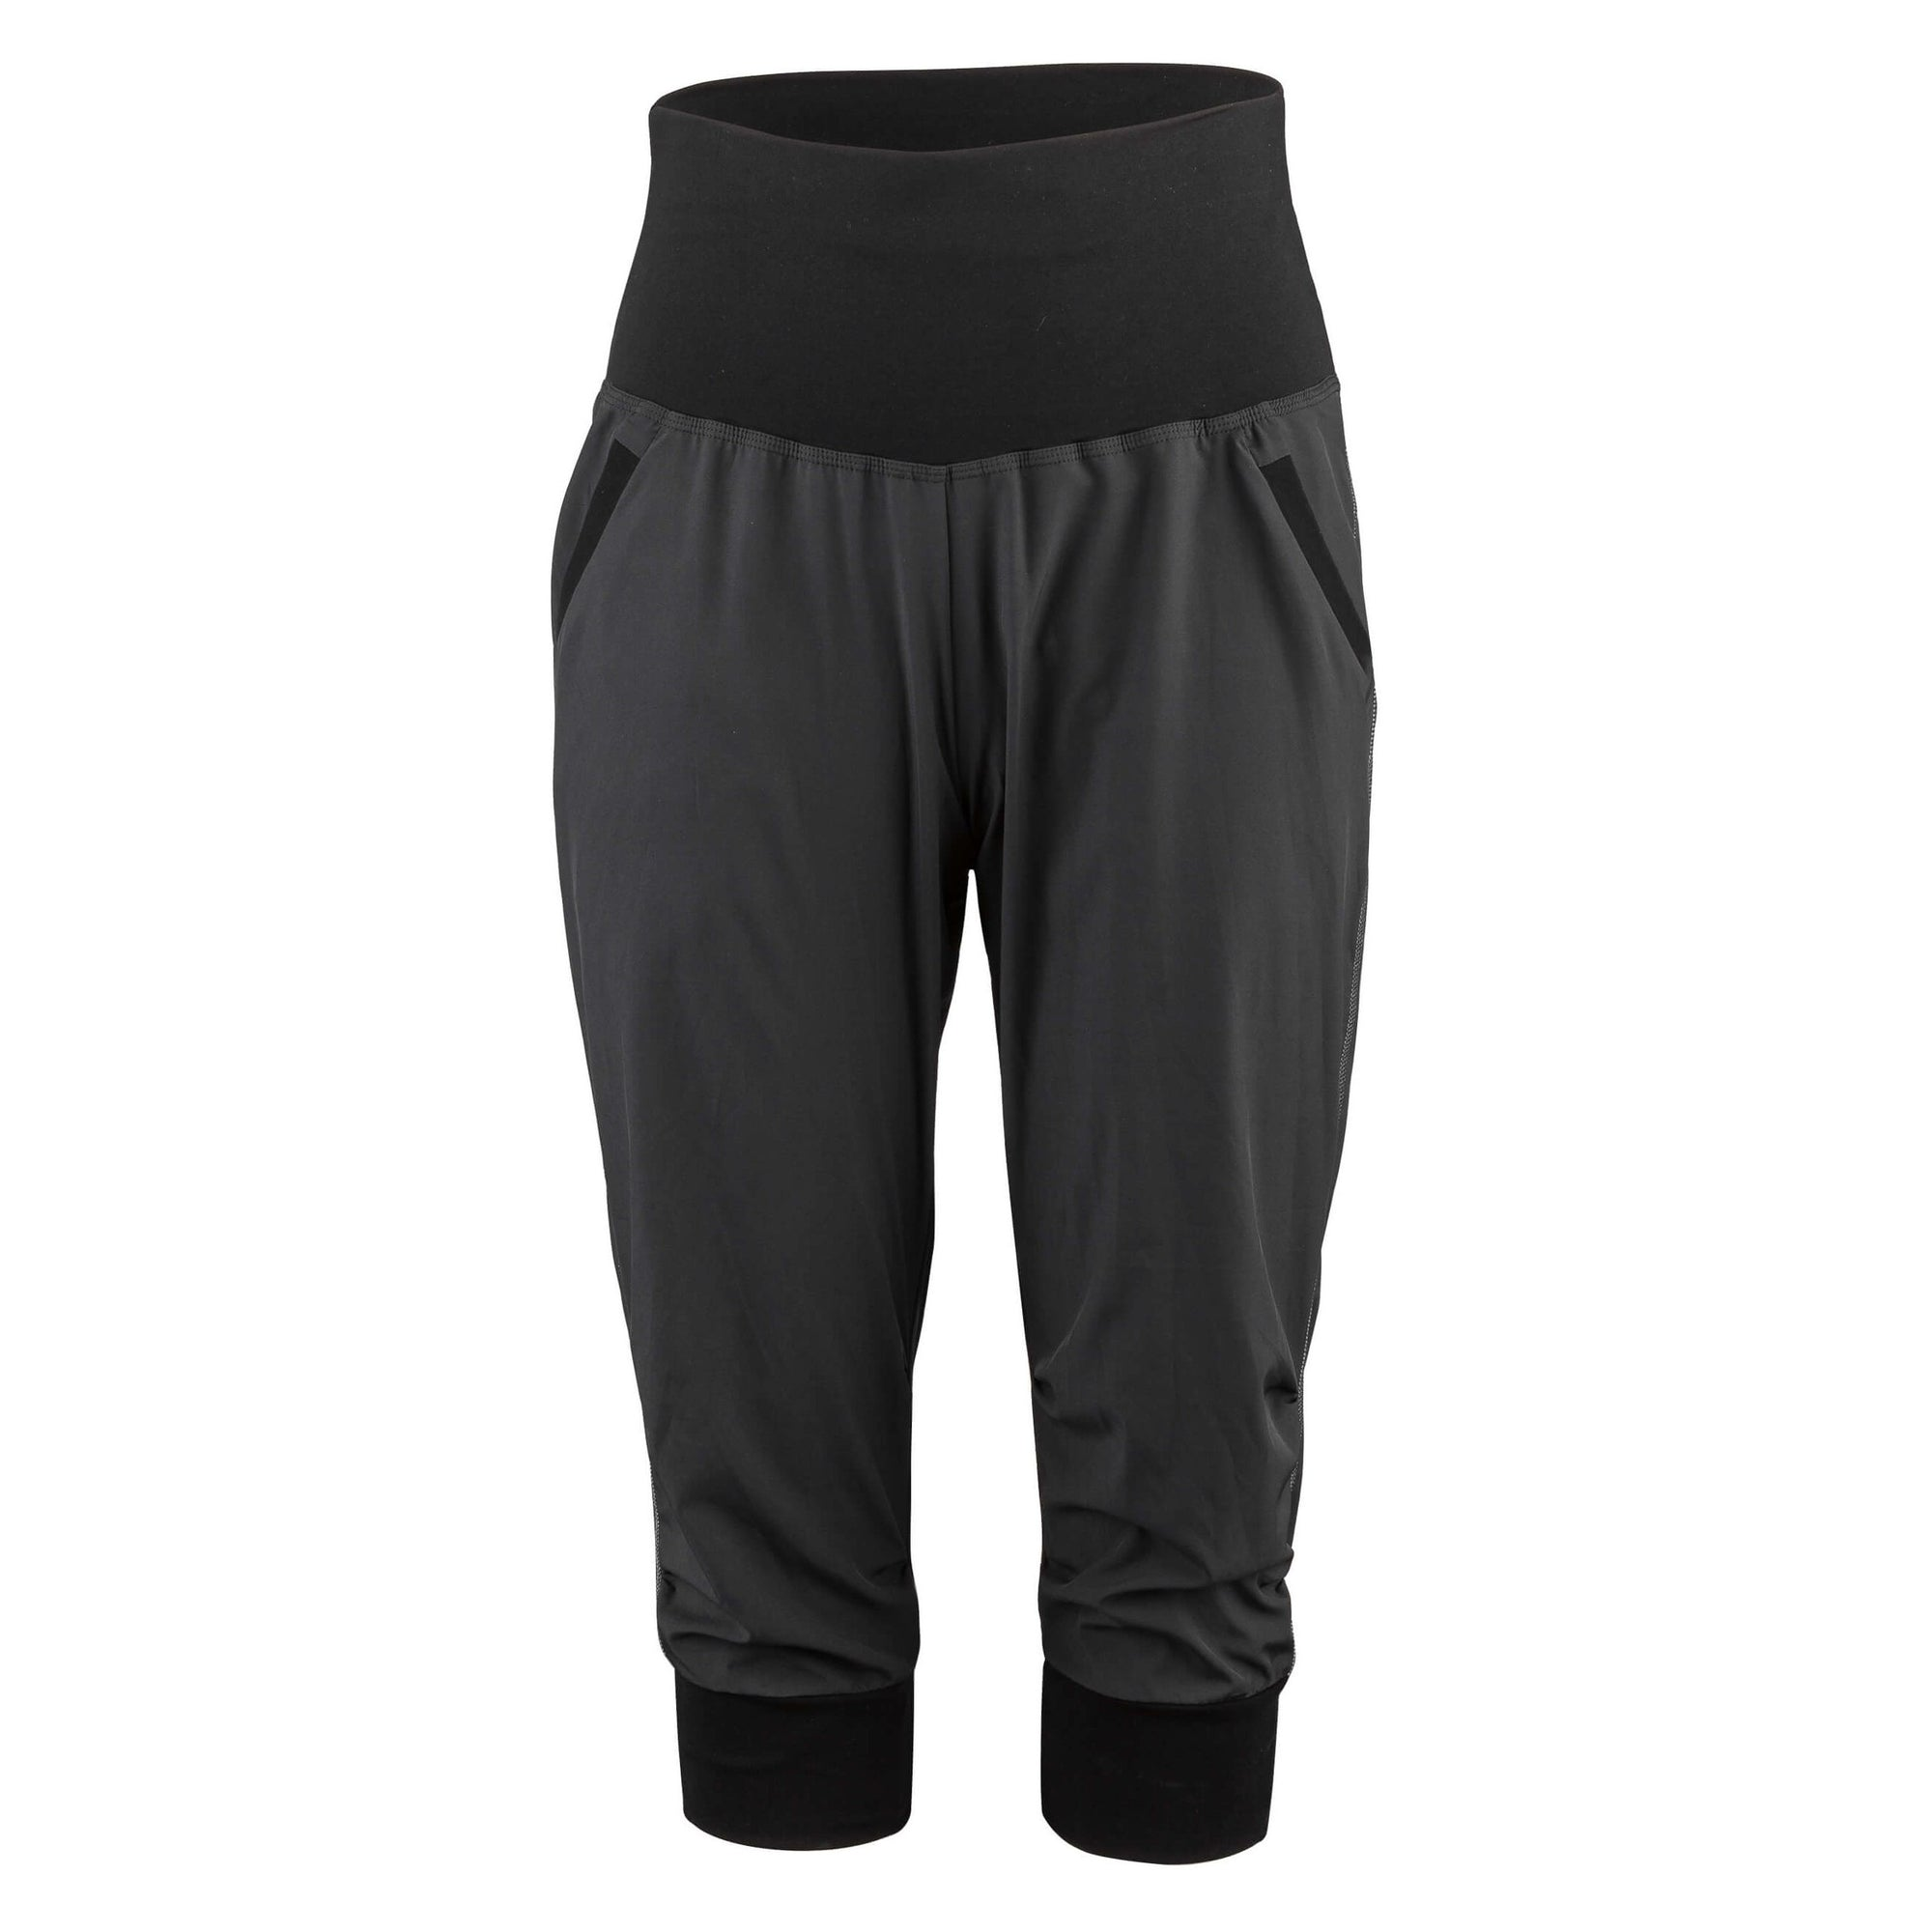 Louis Garneau 2020 Women's Urban Knicker